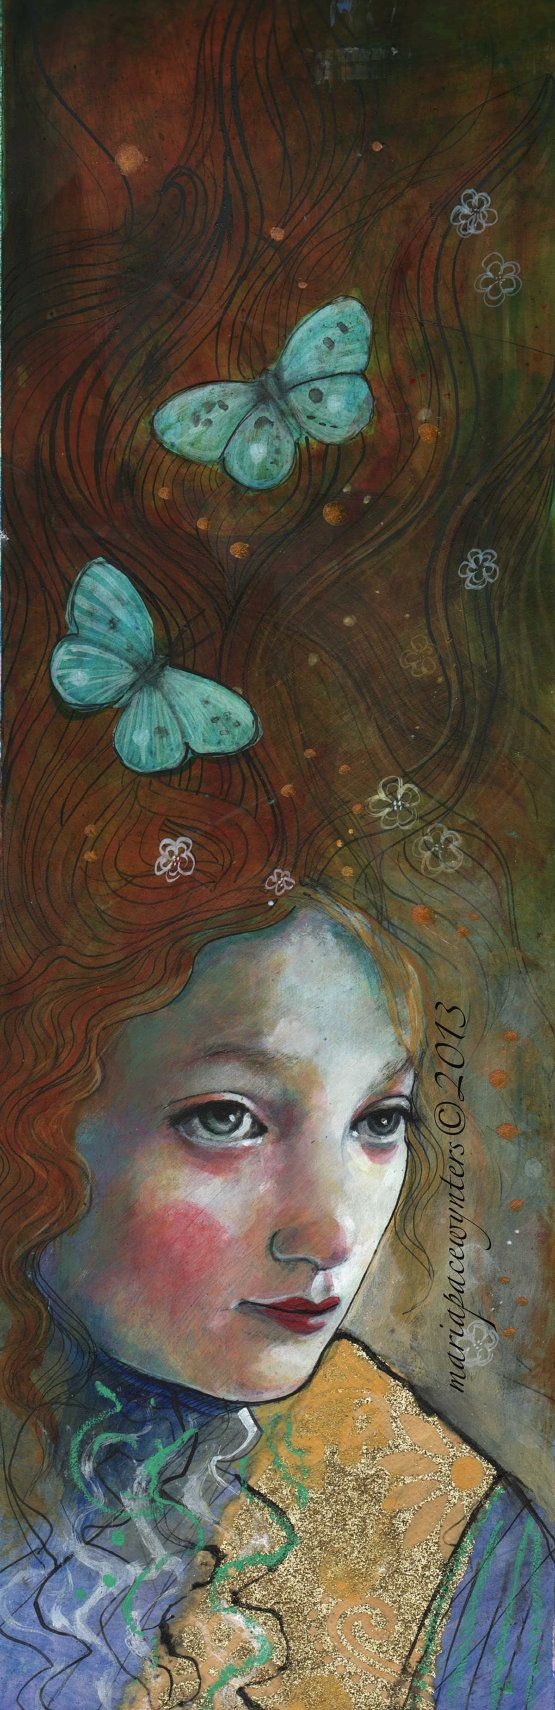 Dream Warrior Original mixed media painting by by MariaPaceWynters: